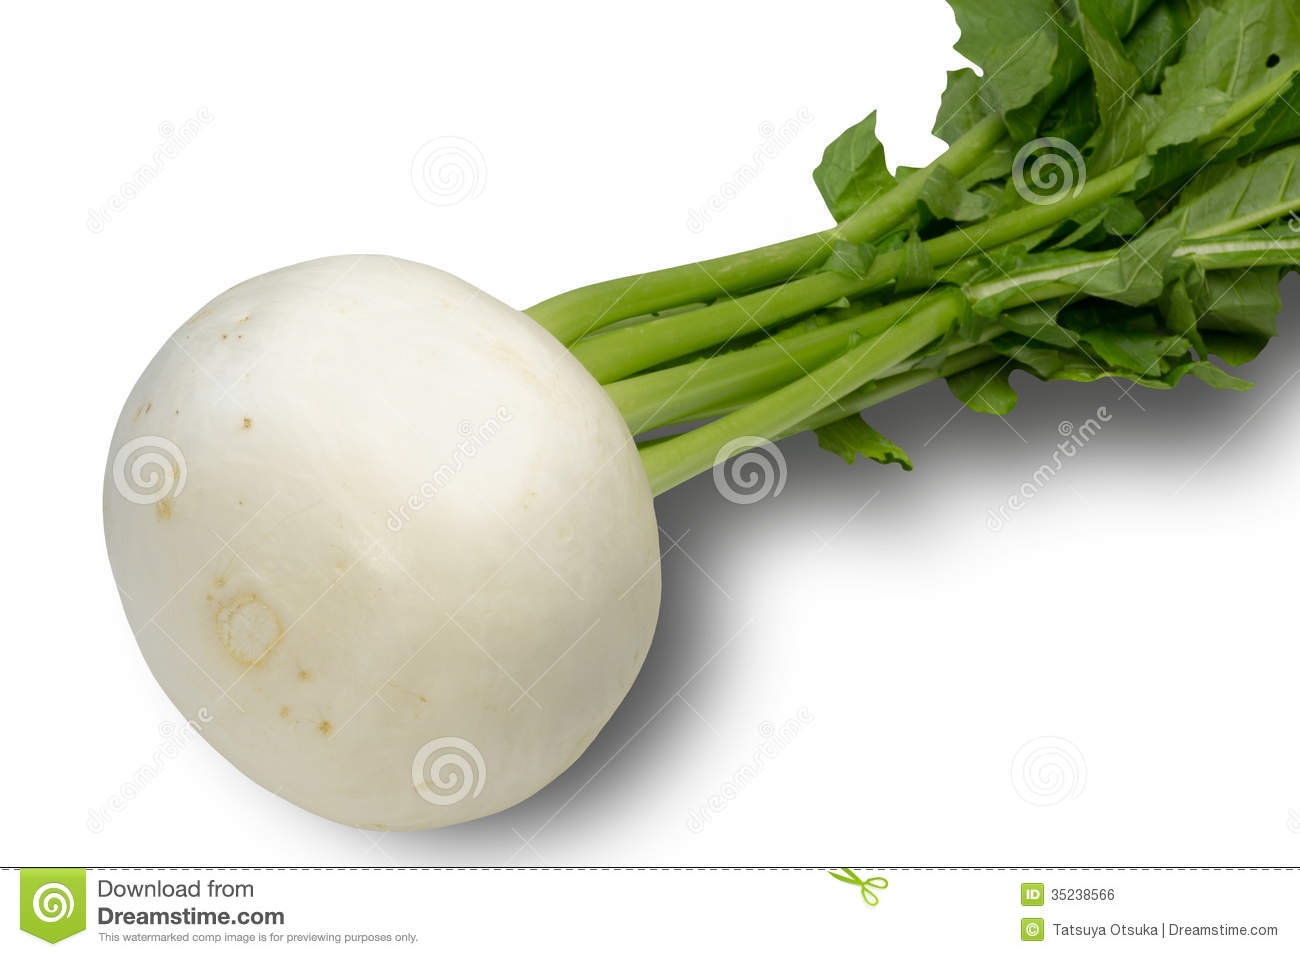 how to cut a turnip